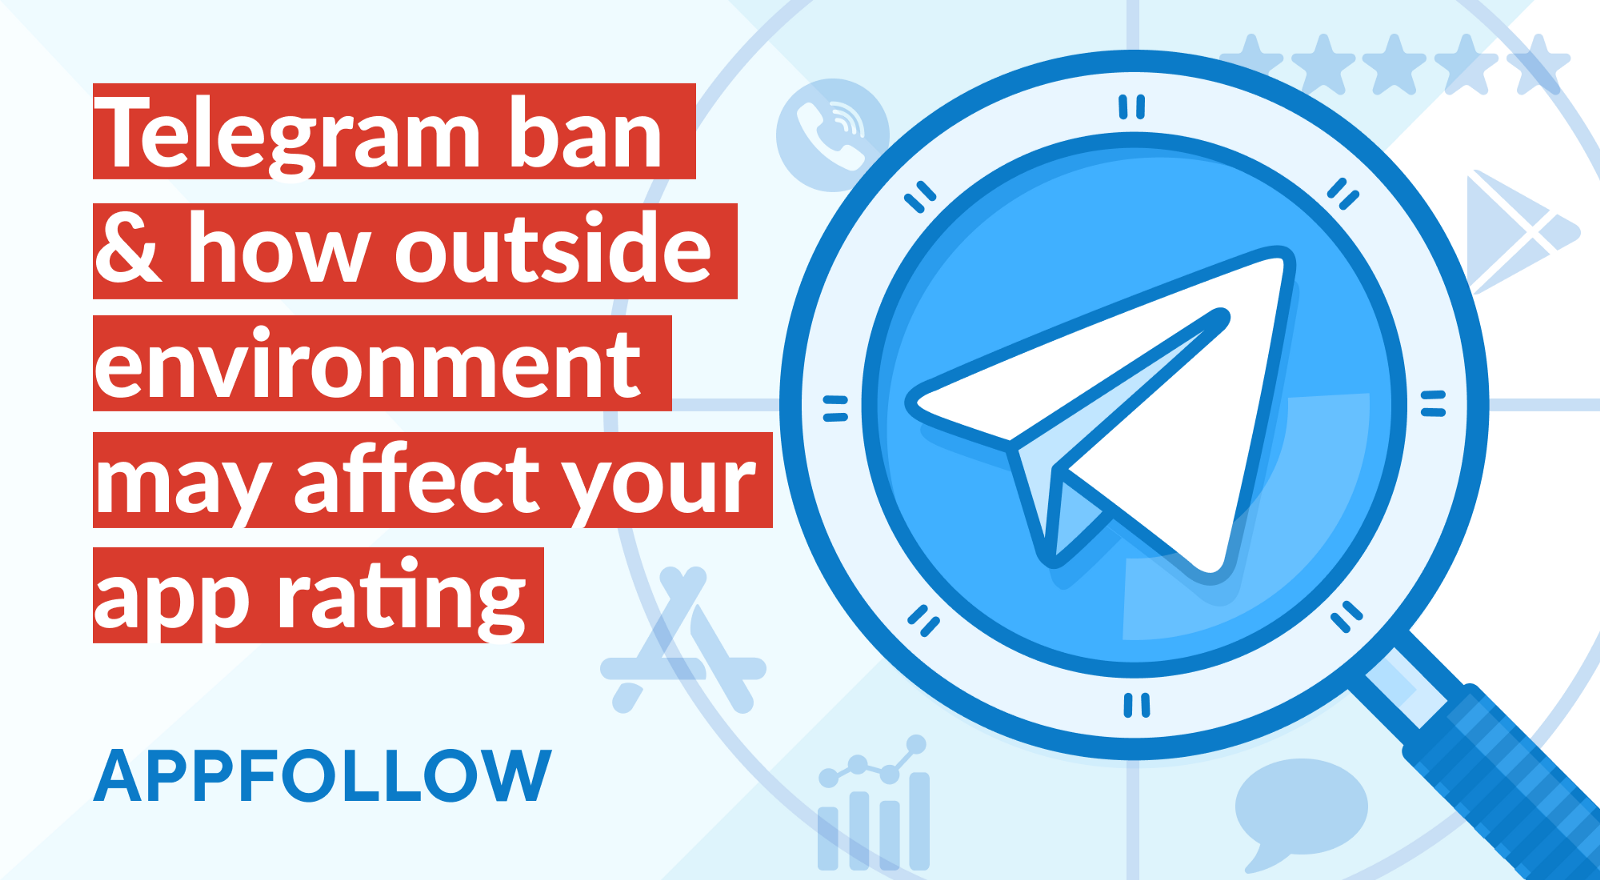 Telegram ban and how outside environment may affect your app rating